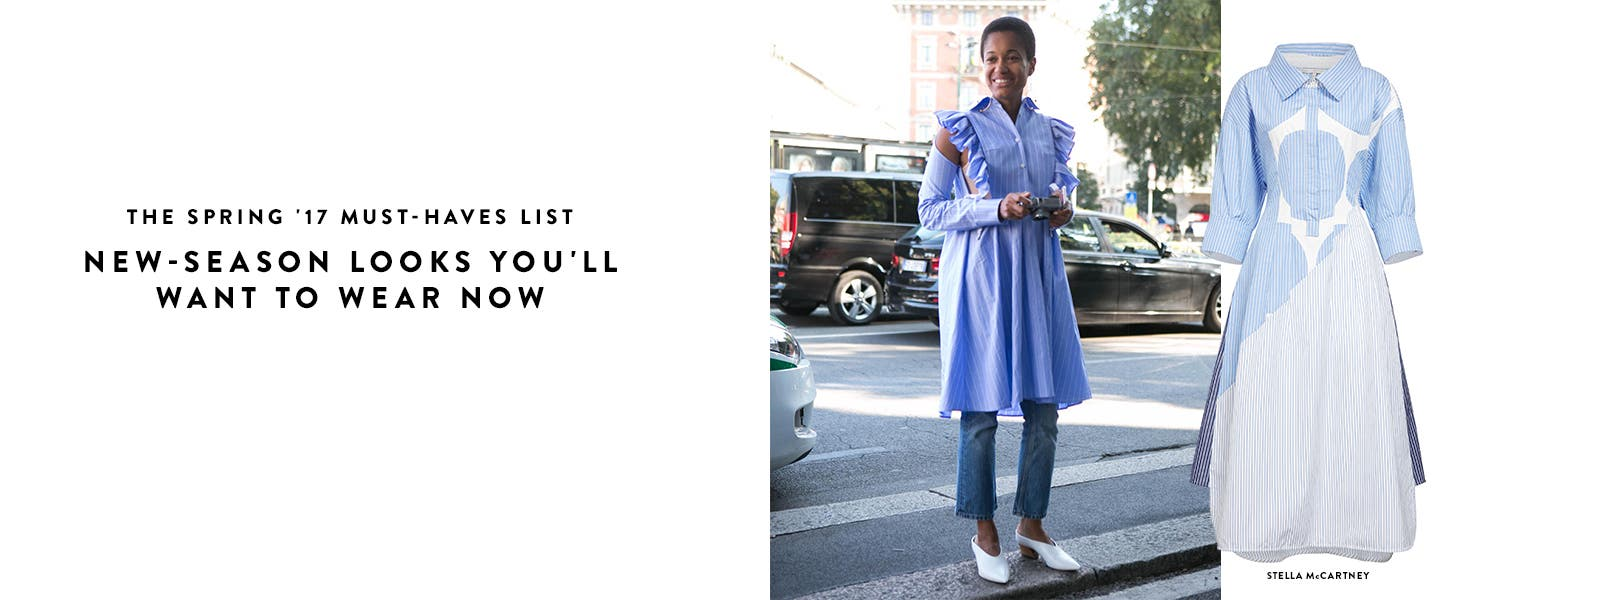 Spring 2017 designer must-haves list.